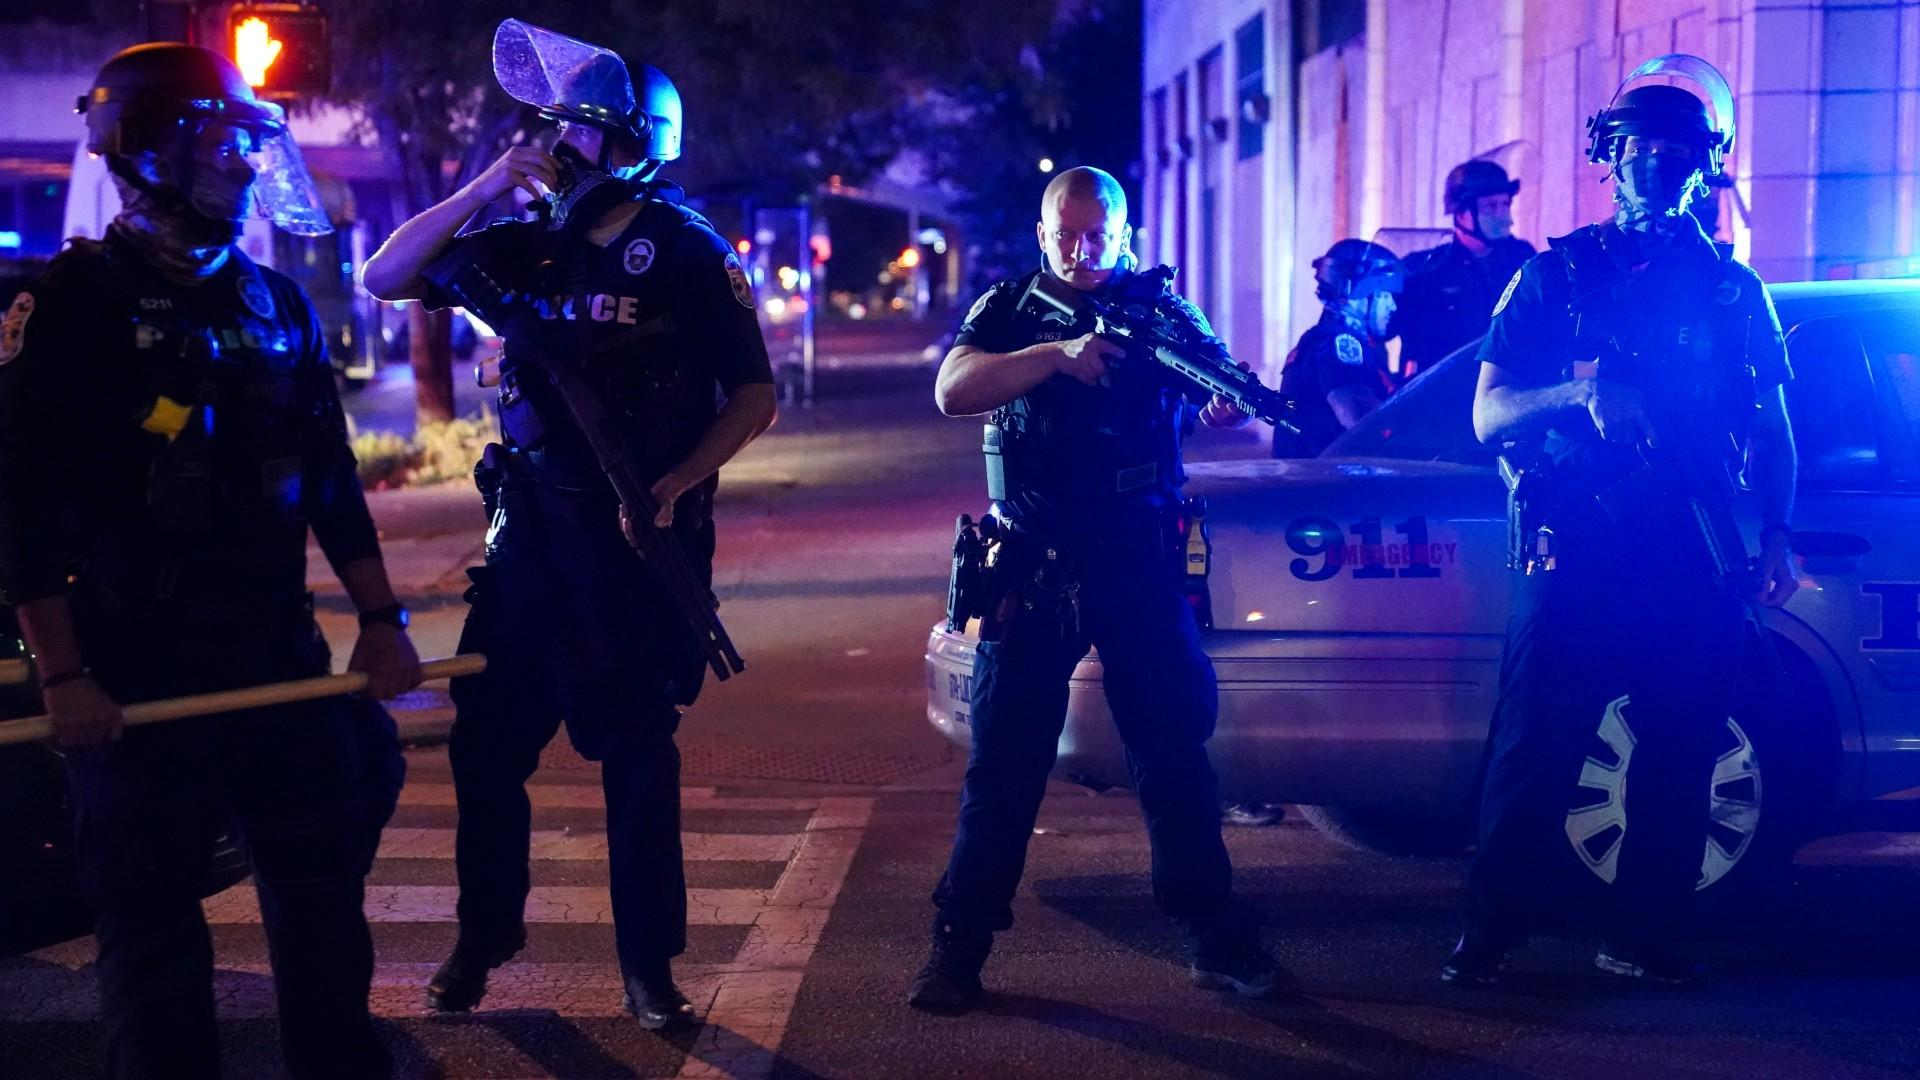 Police stand guard on the perimeter of a crime scene after a police officer was shot, Wednesday, Sept. 23, 2020, in Louisville, Ky. (AP Photo / John Minchillo, File)